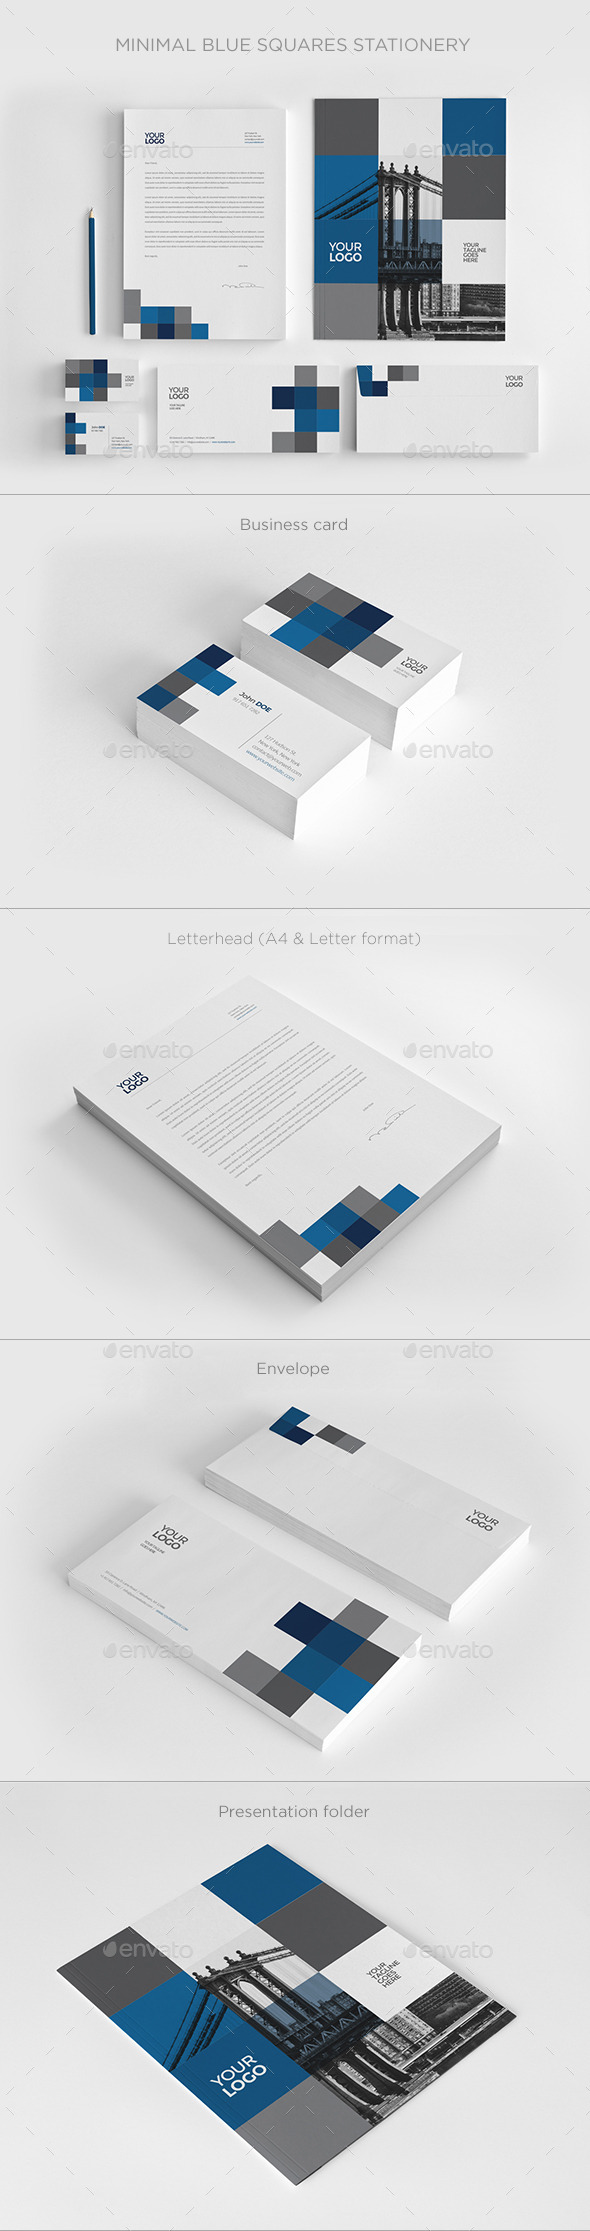 GraphicRiver Minimal Blue Squares Stationery 11790162